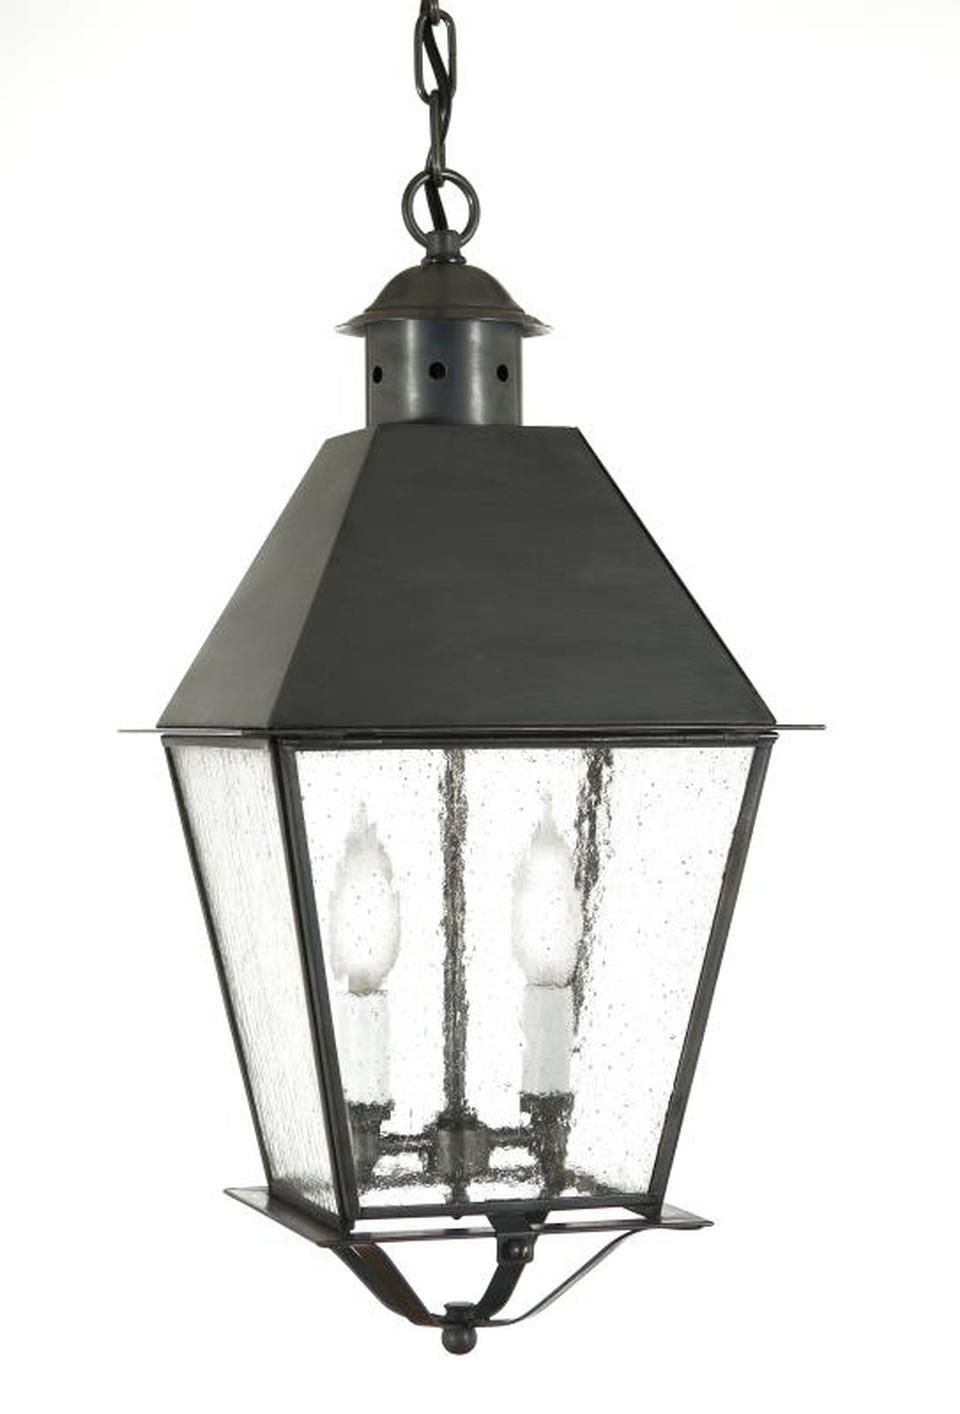 Fourteenth Colony Outdoor Lighting Greenwich Hanging Lantern Metal Top 2 Candle Bulbs 4472 In 2020 Steel Lighting Candle Bulbs Hanging Lanterns